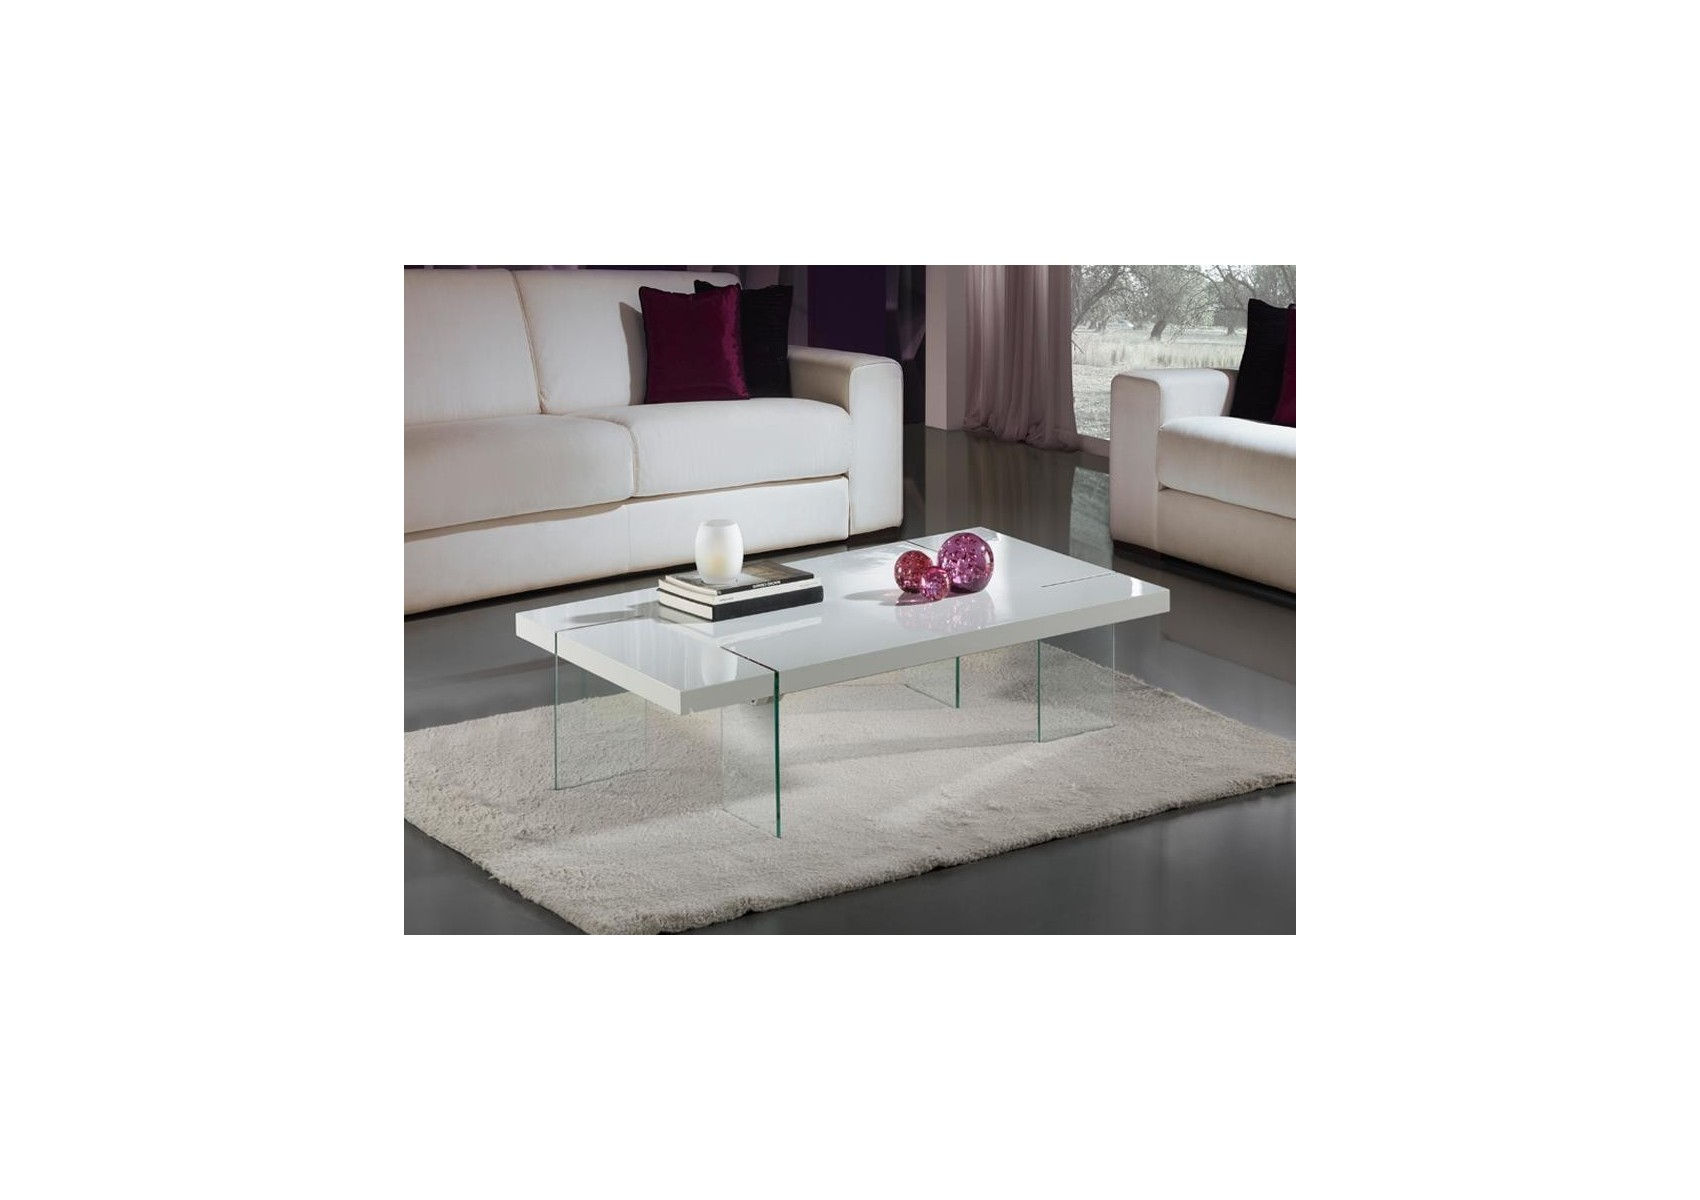 Table basse design laqu blanc et verre tremp brisa deco schuller boit - Table basse blanc laque design ...